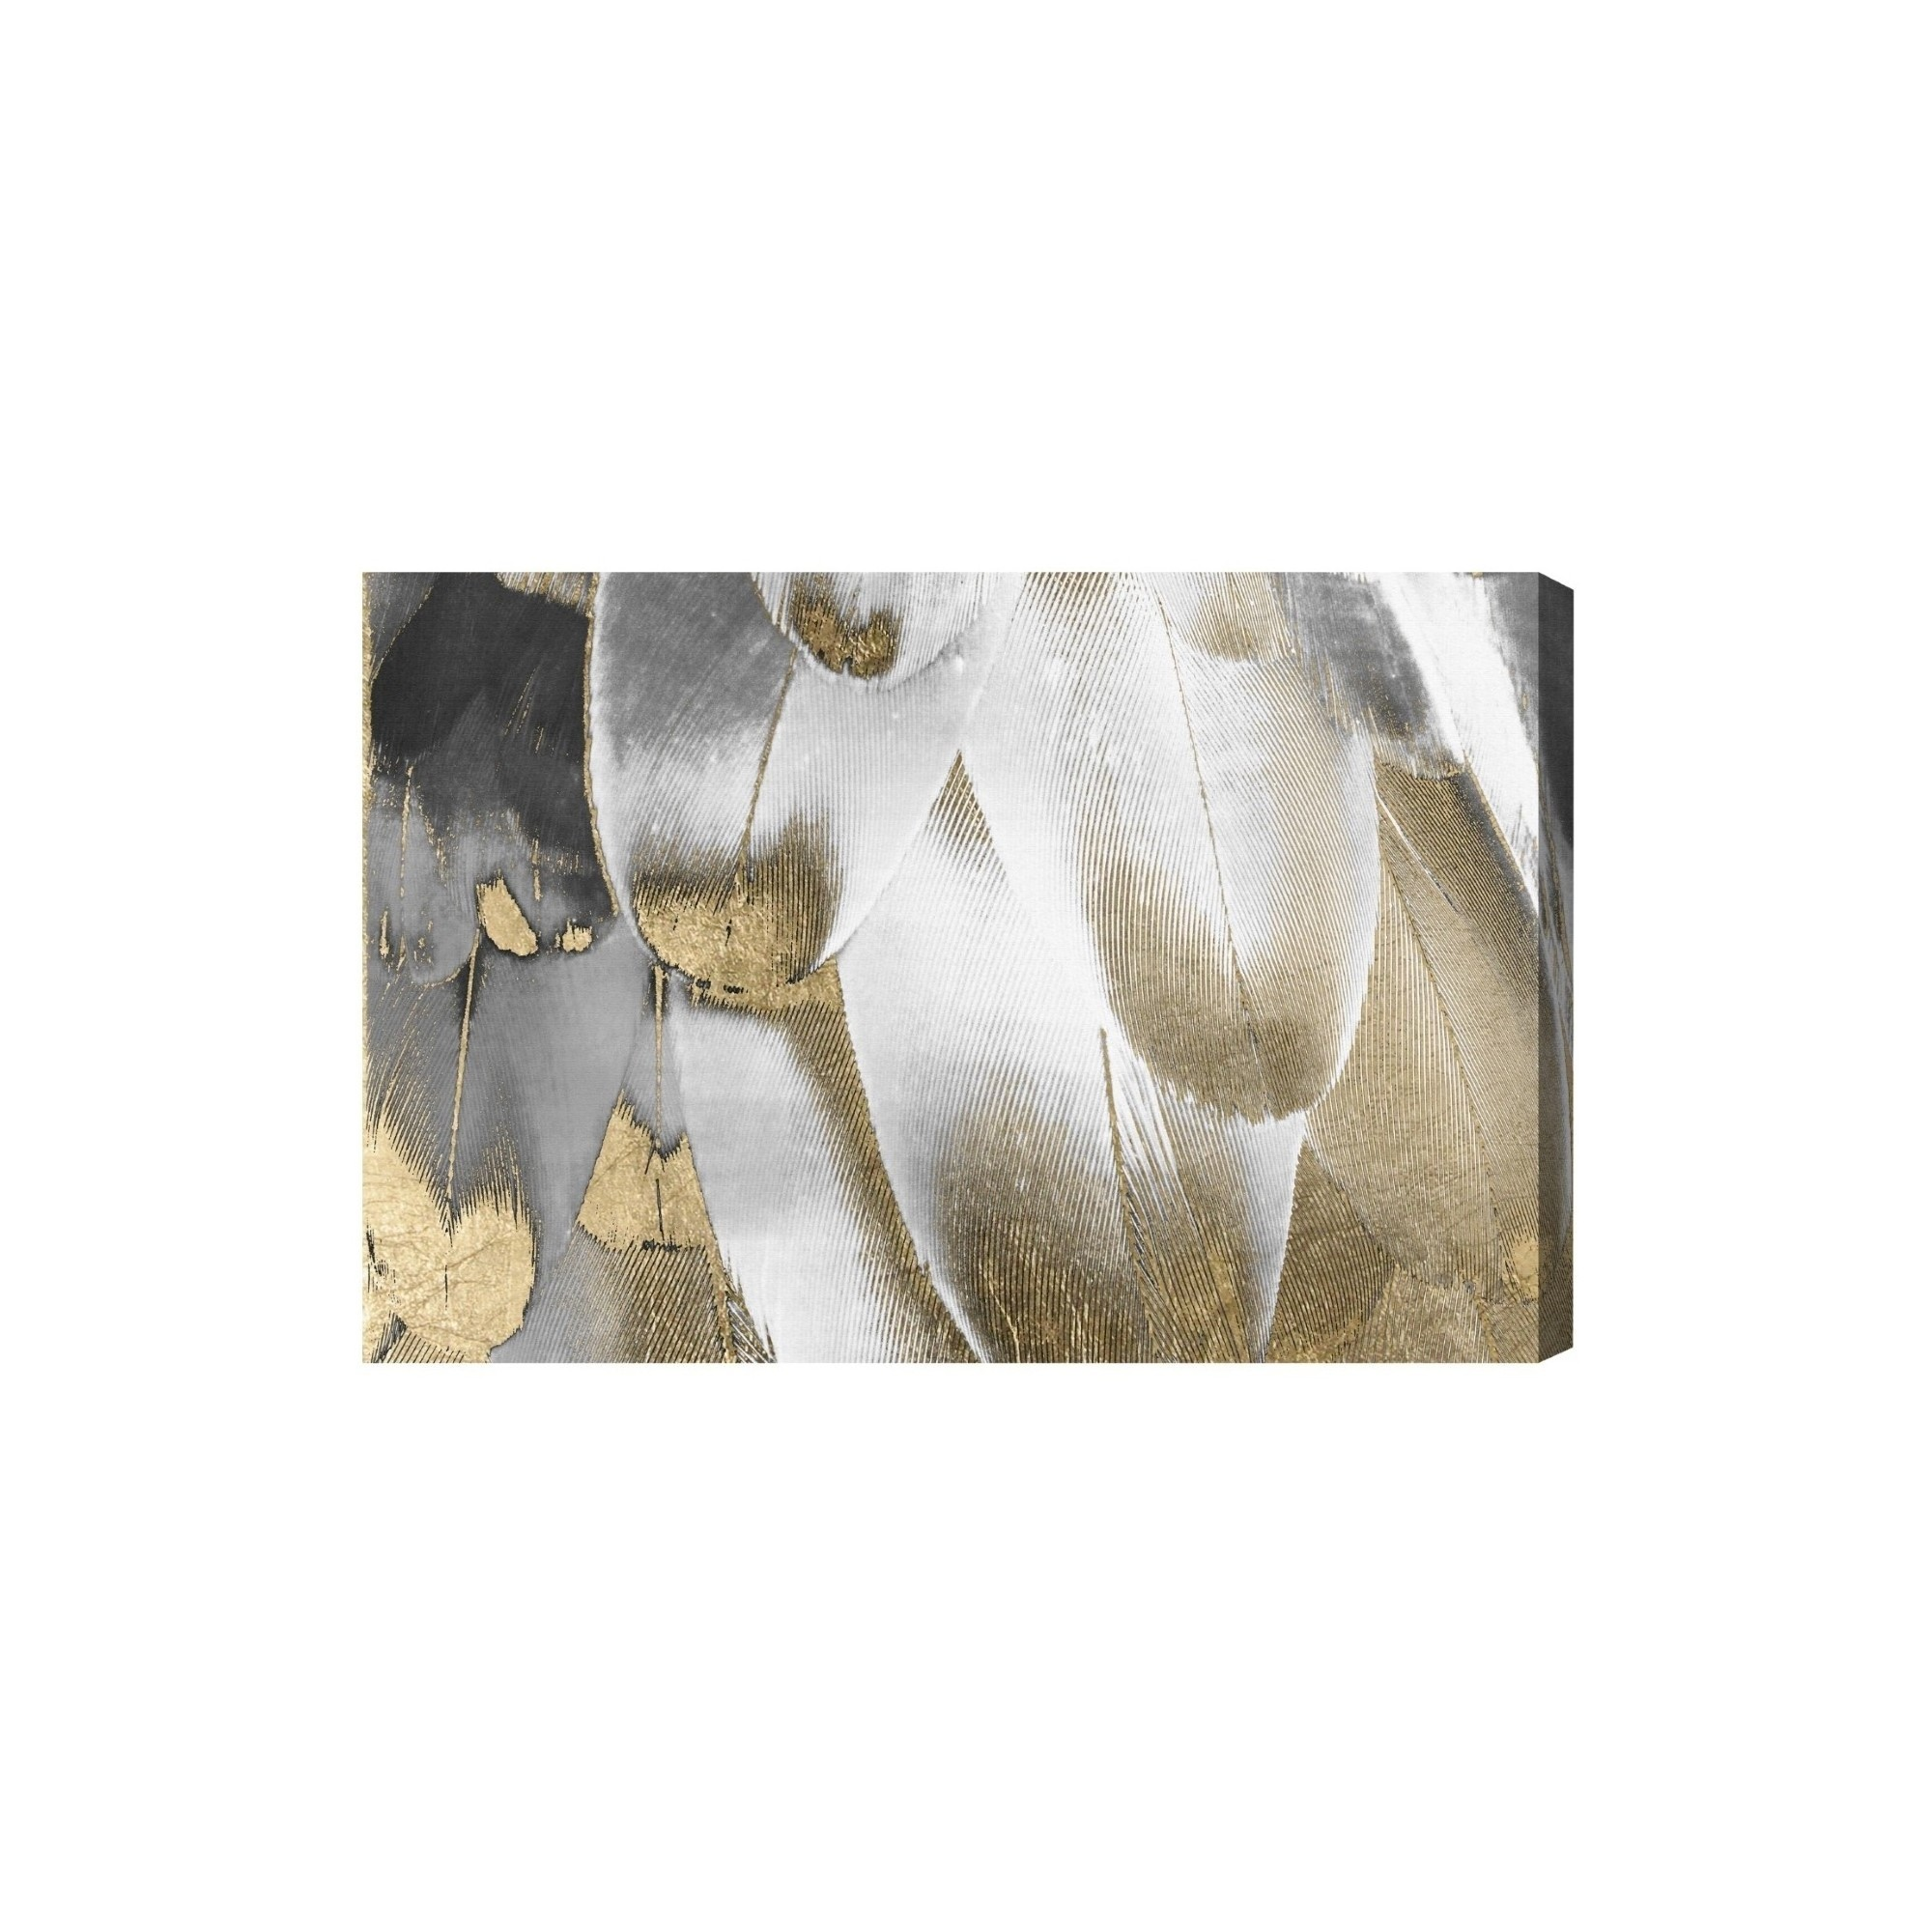 Oliver gal unframed wall royal feathers canvas art 36x24 gold white